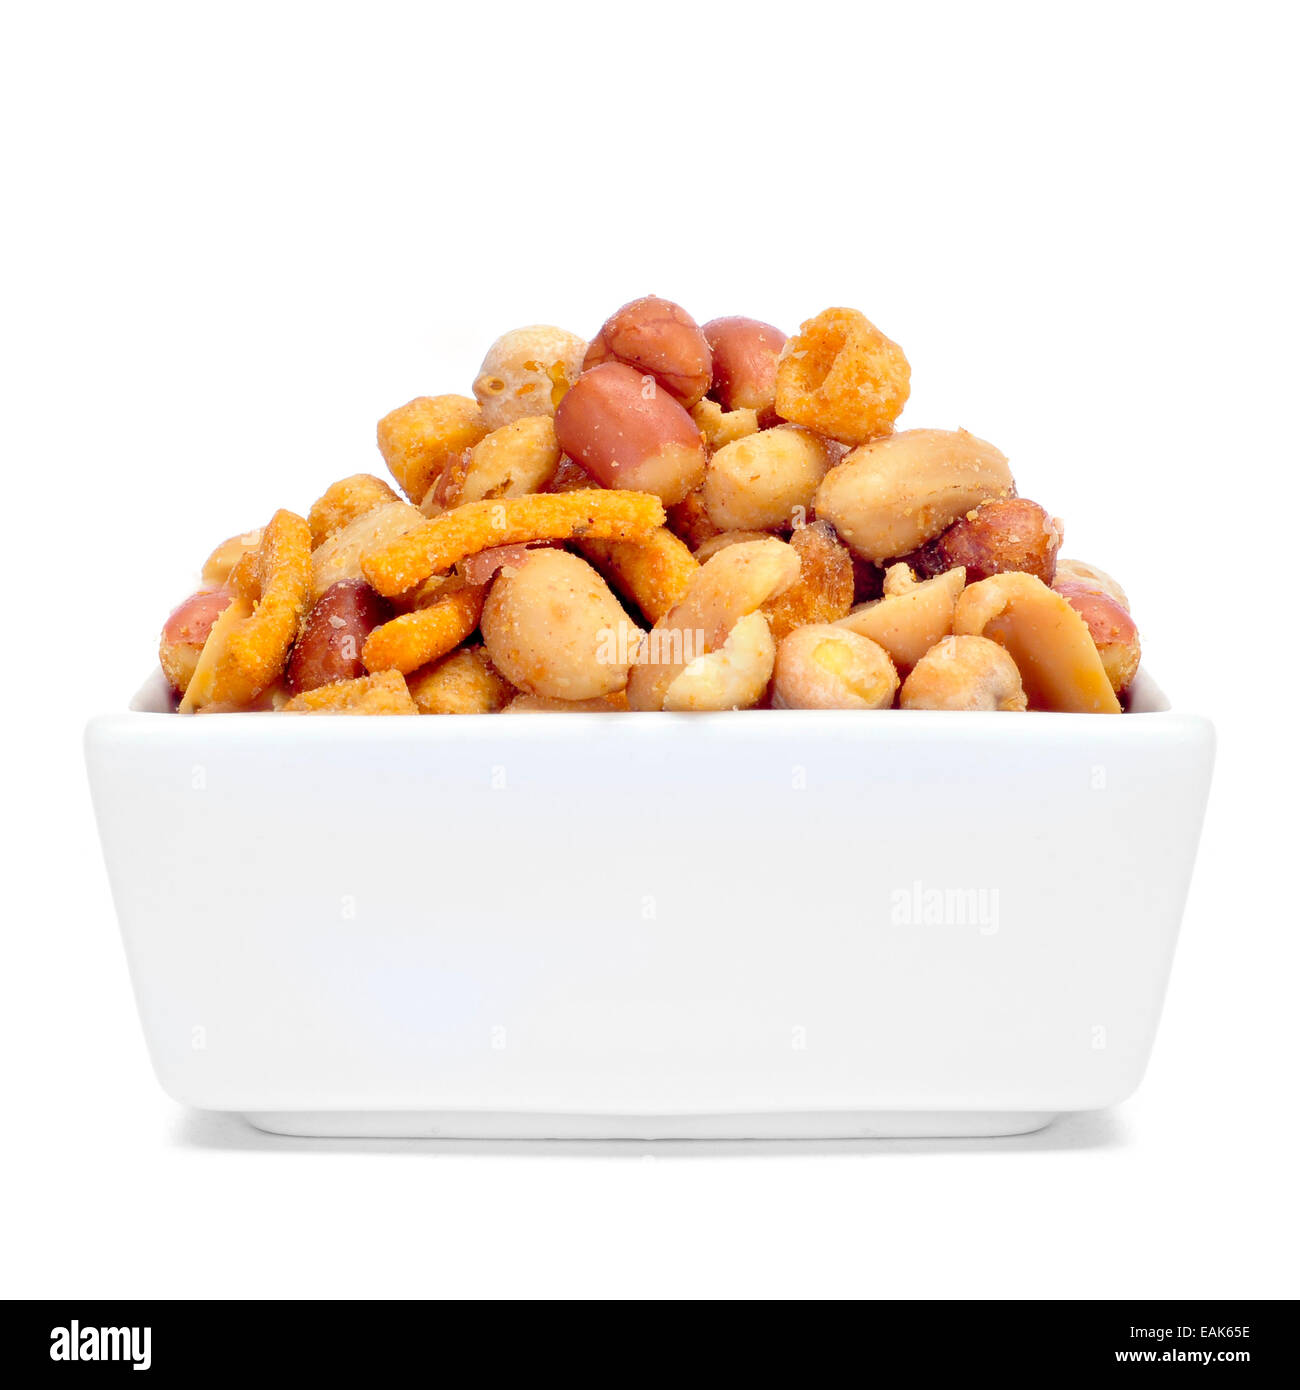 a bowl with mixed nuts, such as roasted and salted peanuts, almonds or chickpeas on a white background - Stock Image